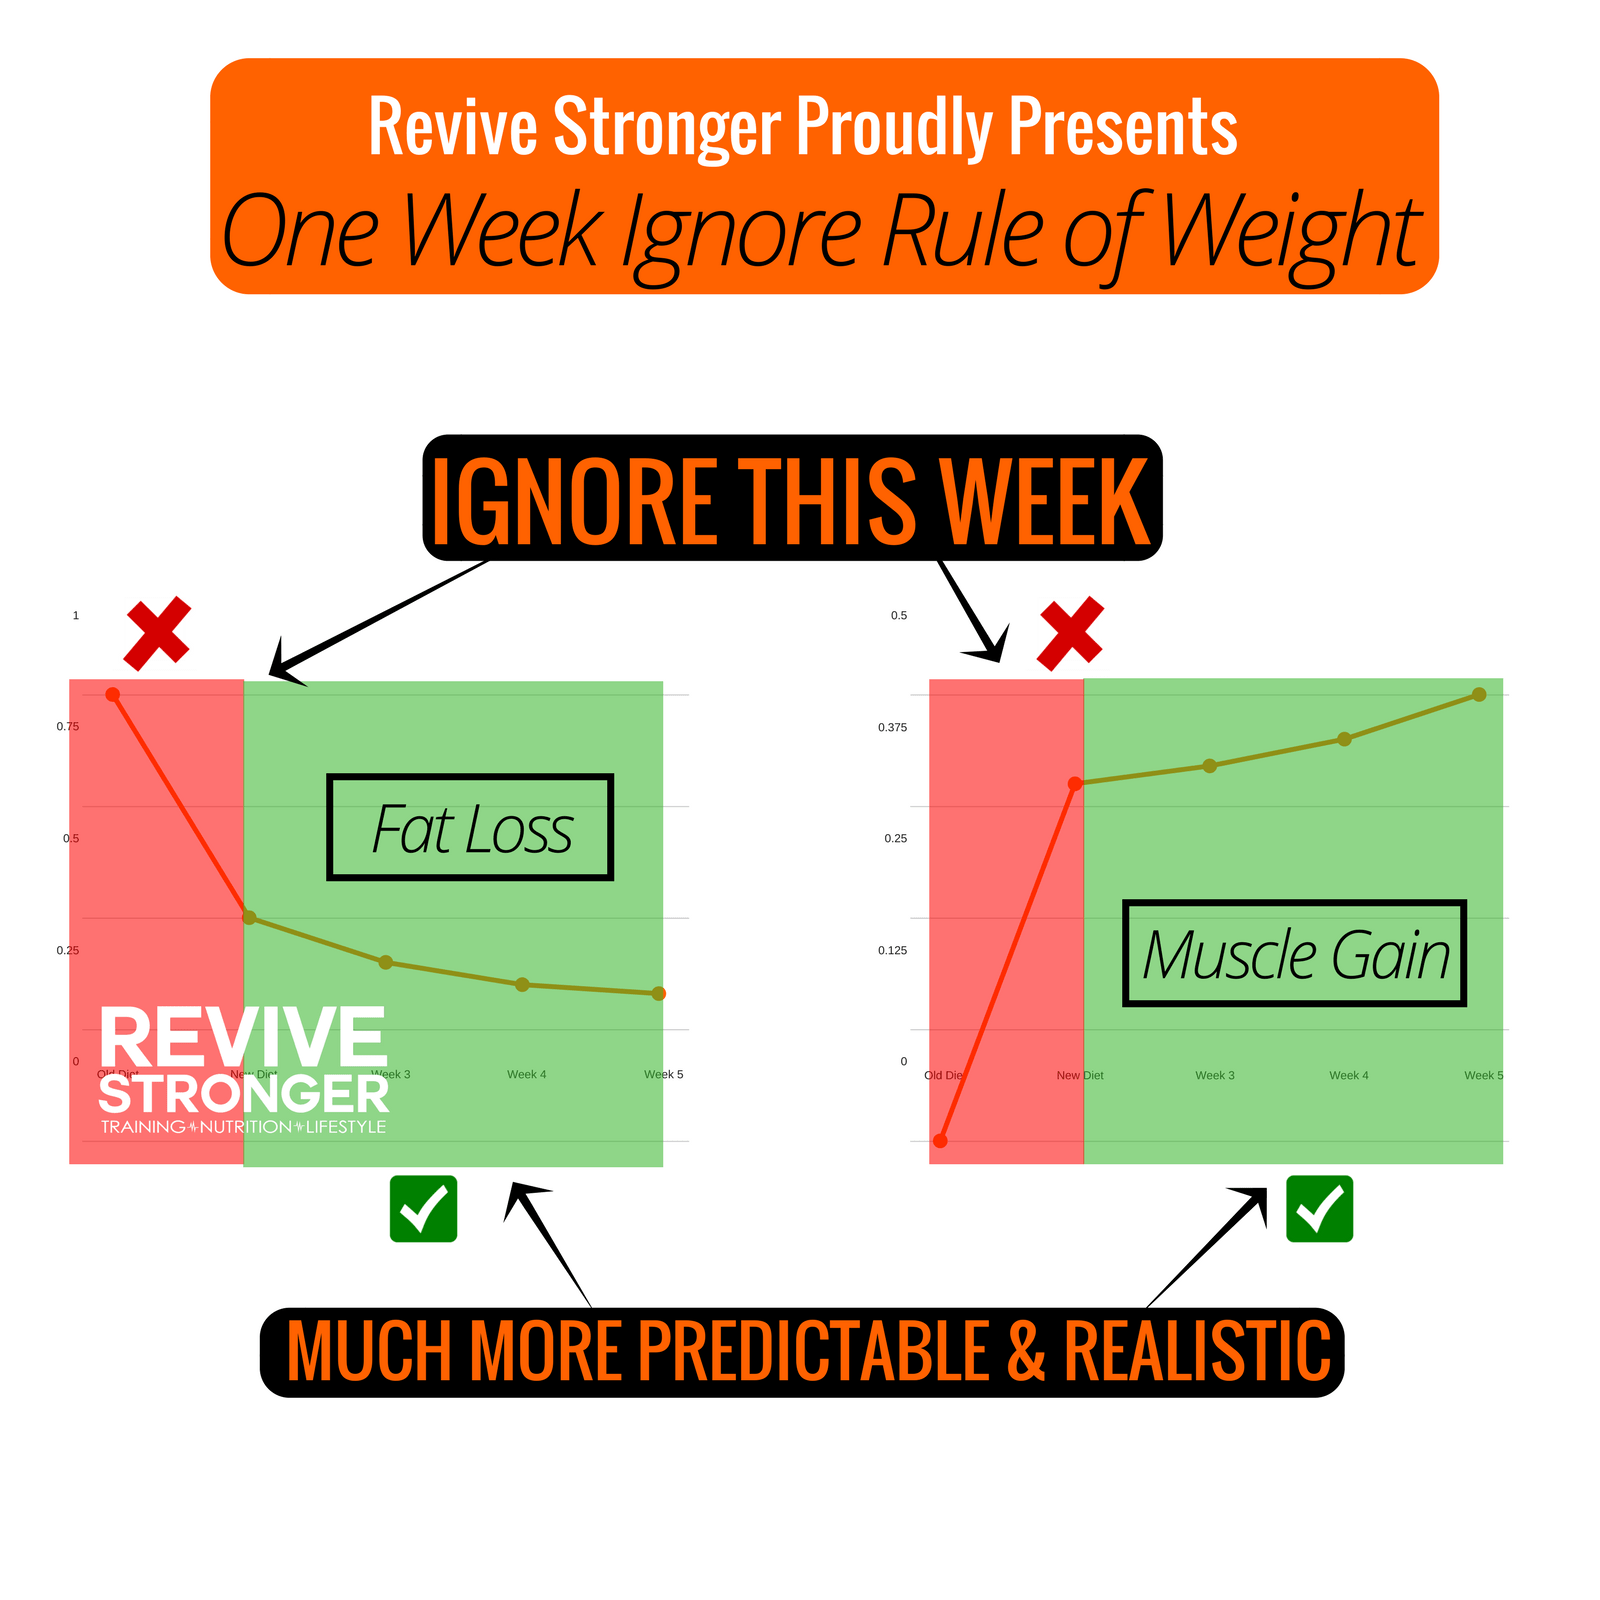 Bookmark This The Mini Cut Manual Revive Stronger One Healthy Breakdown Do Circuit A Few Times Week For Strong Its Like First Back To School After Long Break Youre Not In Routine Subjects Are Little Rough Your Mind But That Things